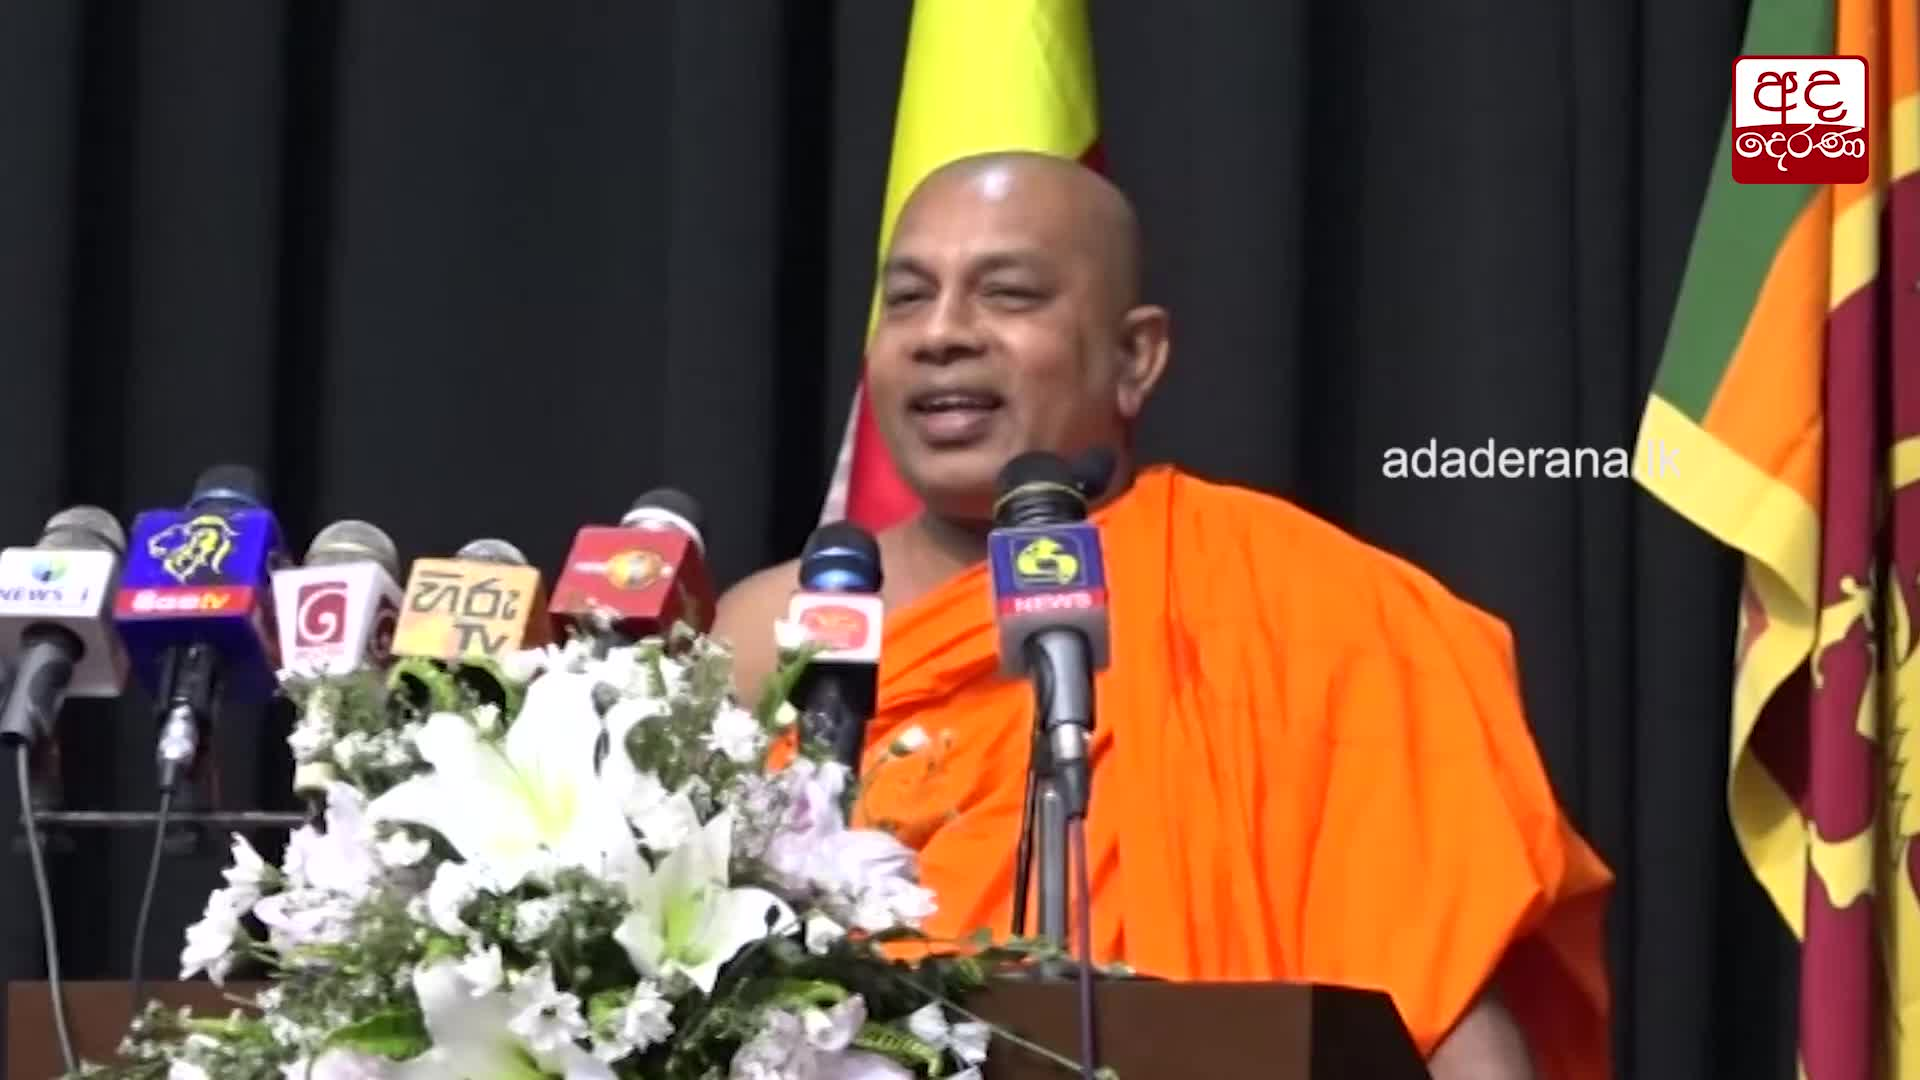 Every leader who took over after the British sold our land – Induragare Dhammarathana Thera